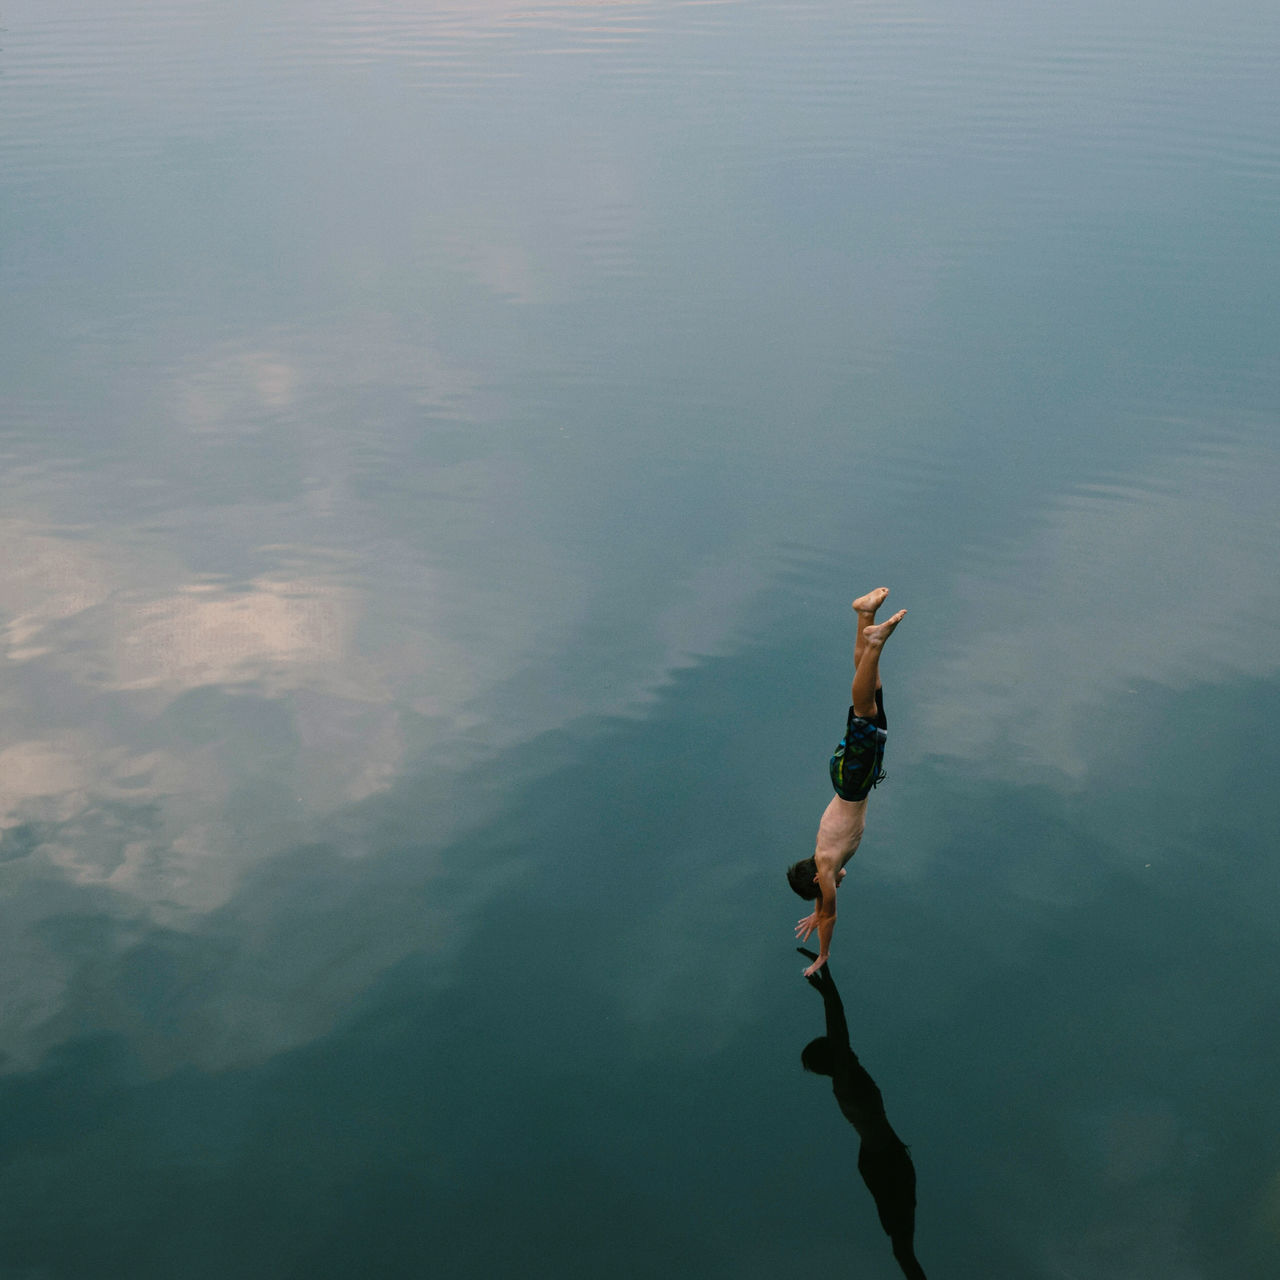 Blue,  Day,  Diving Into Water,  Enjoyment,  High Angle View